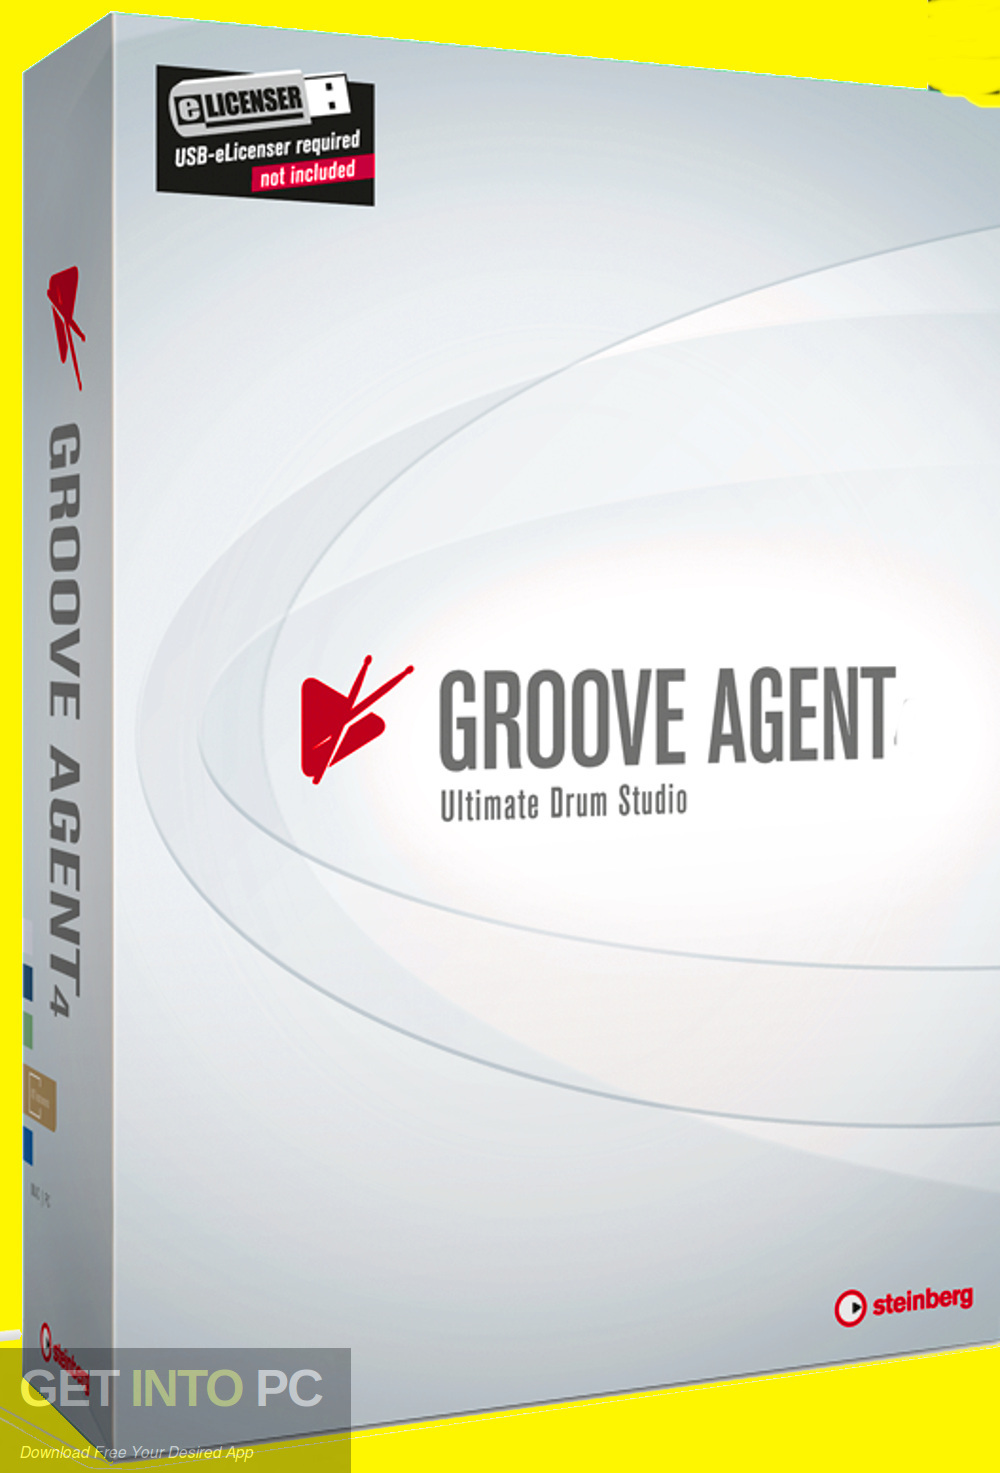 Steinberg - Groove Agent VST Free Download-GetintoPC.com